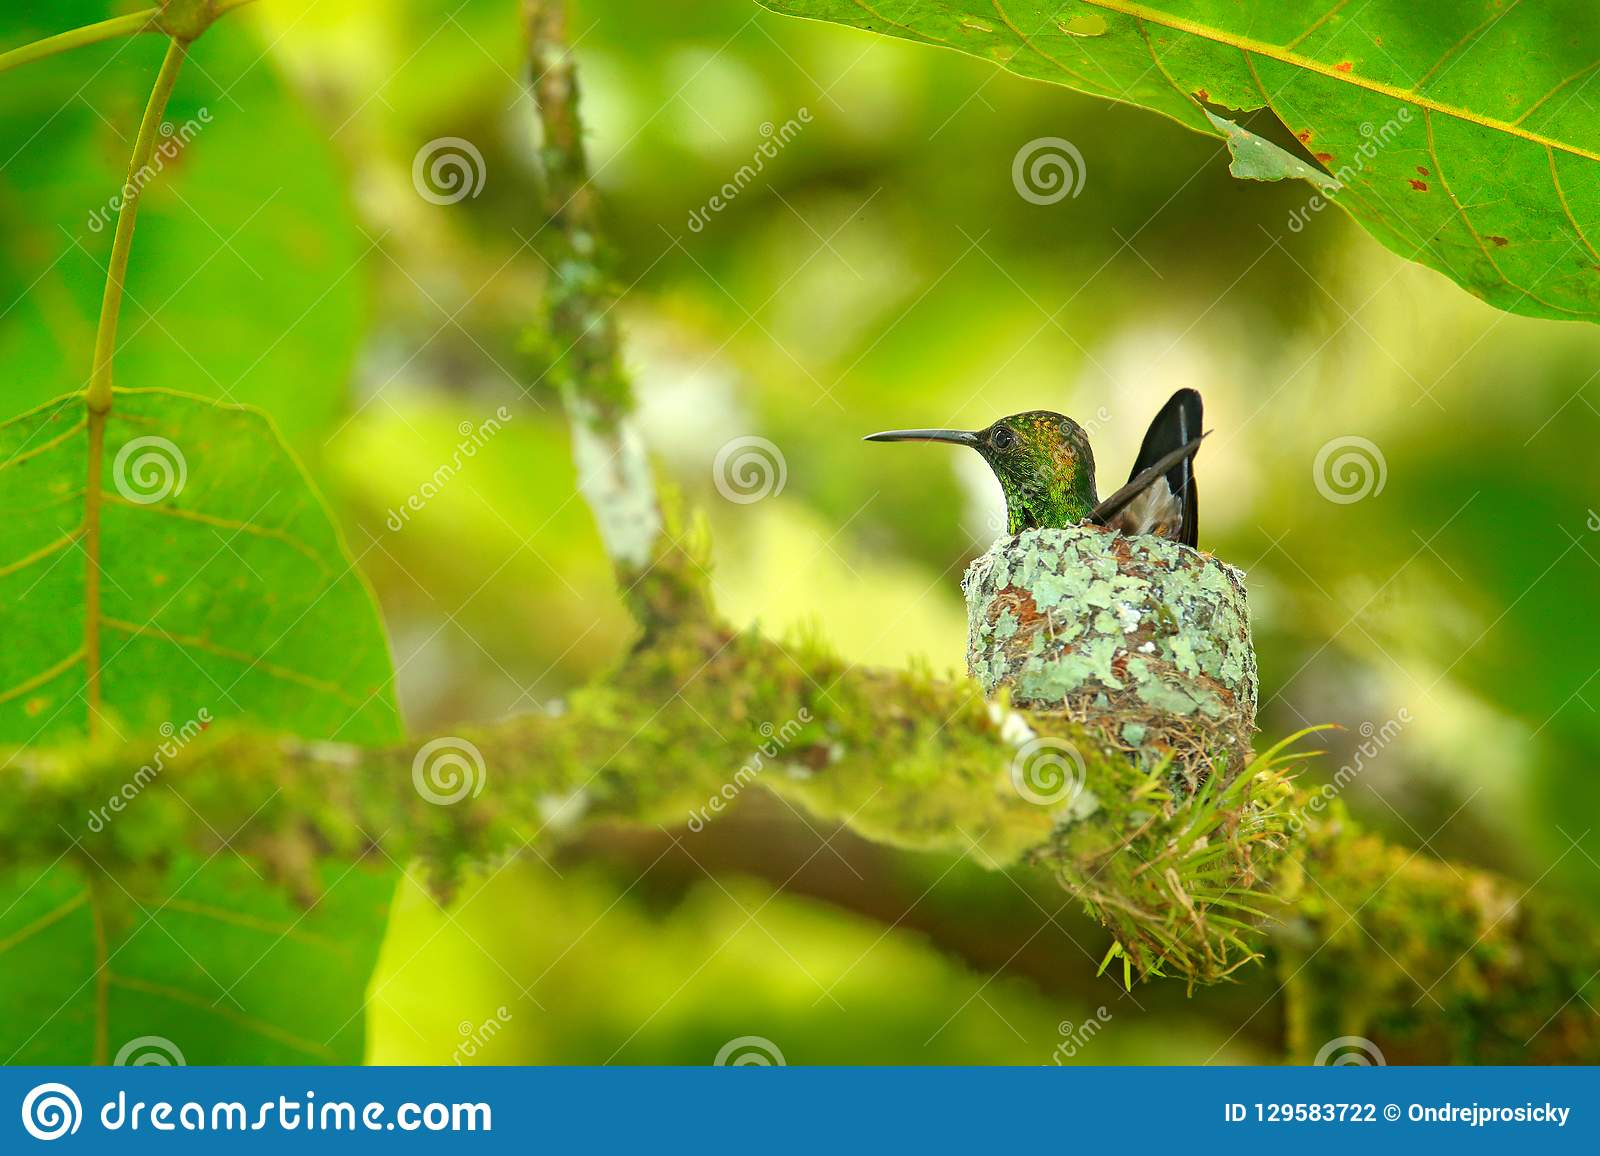 Hummingbird sitting on the eggs in the nest, Trinidad and Tobago. Copper-rumped Hummingbird, Amazilia tobaci, on the tree, wildlif